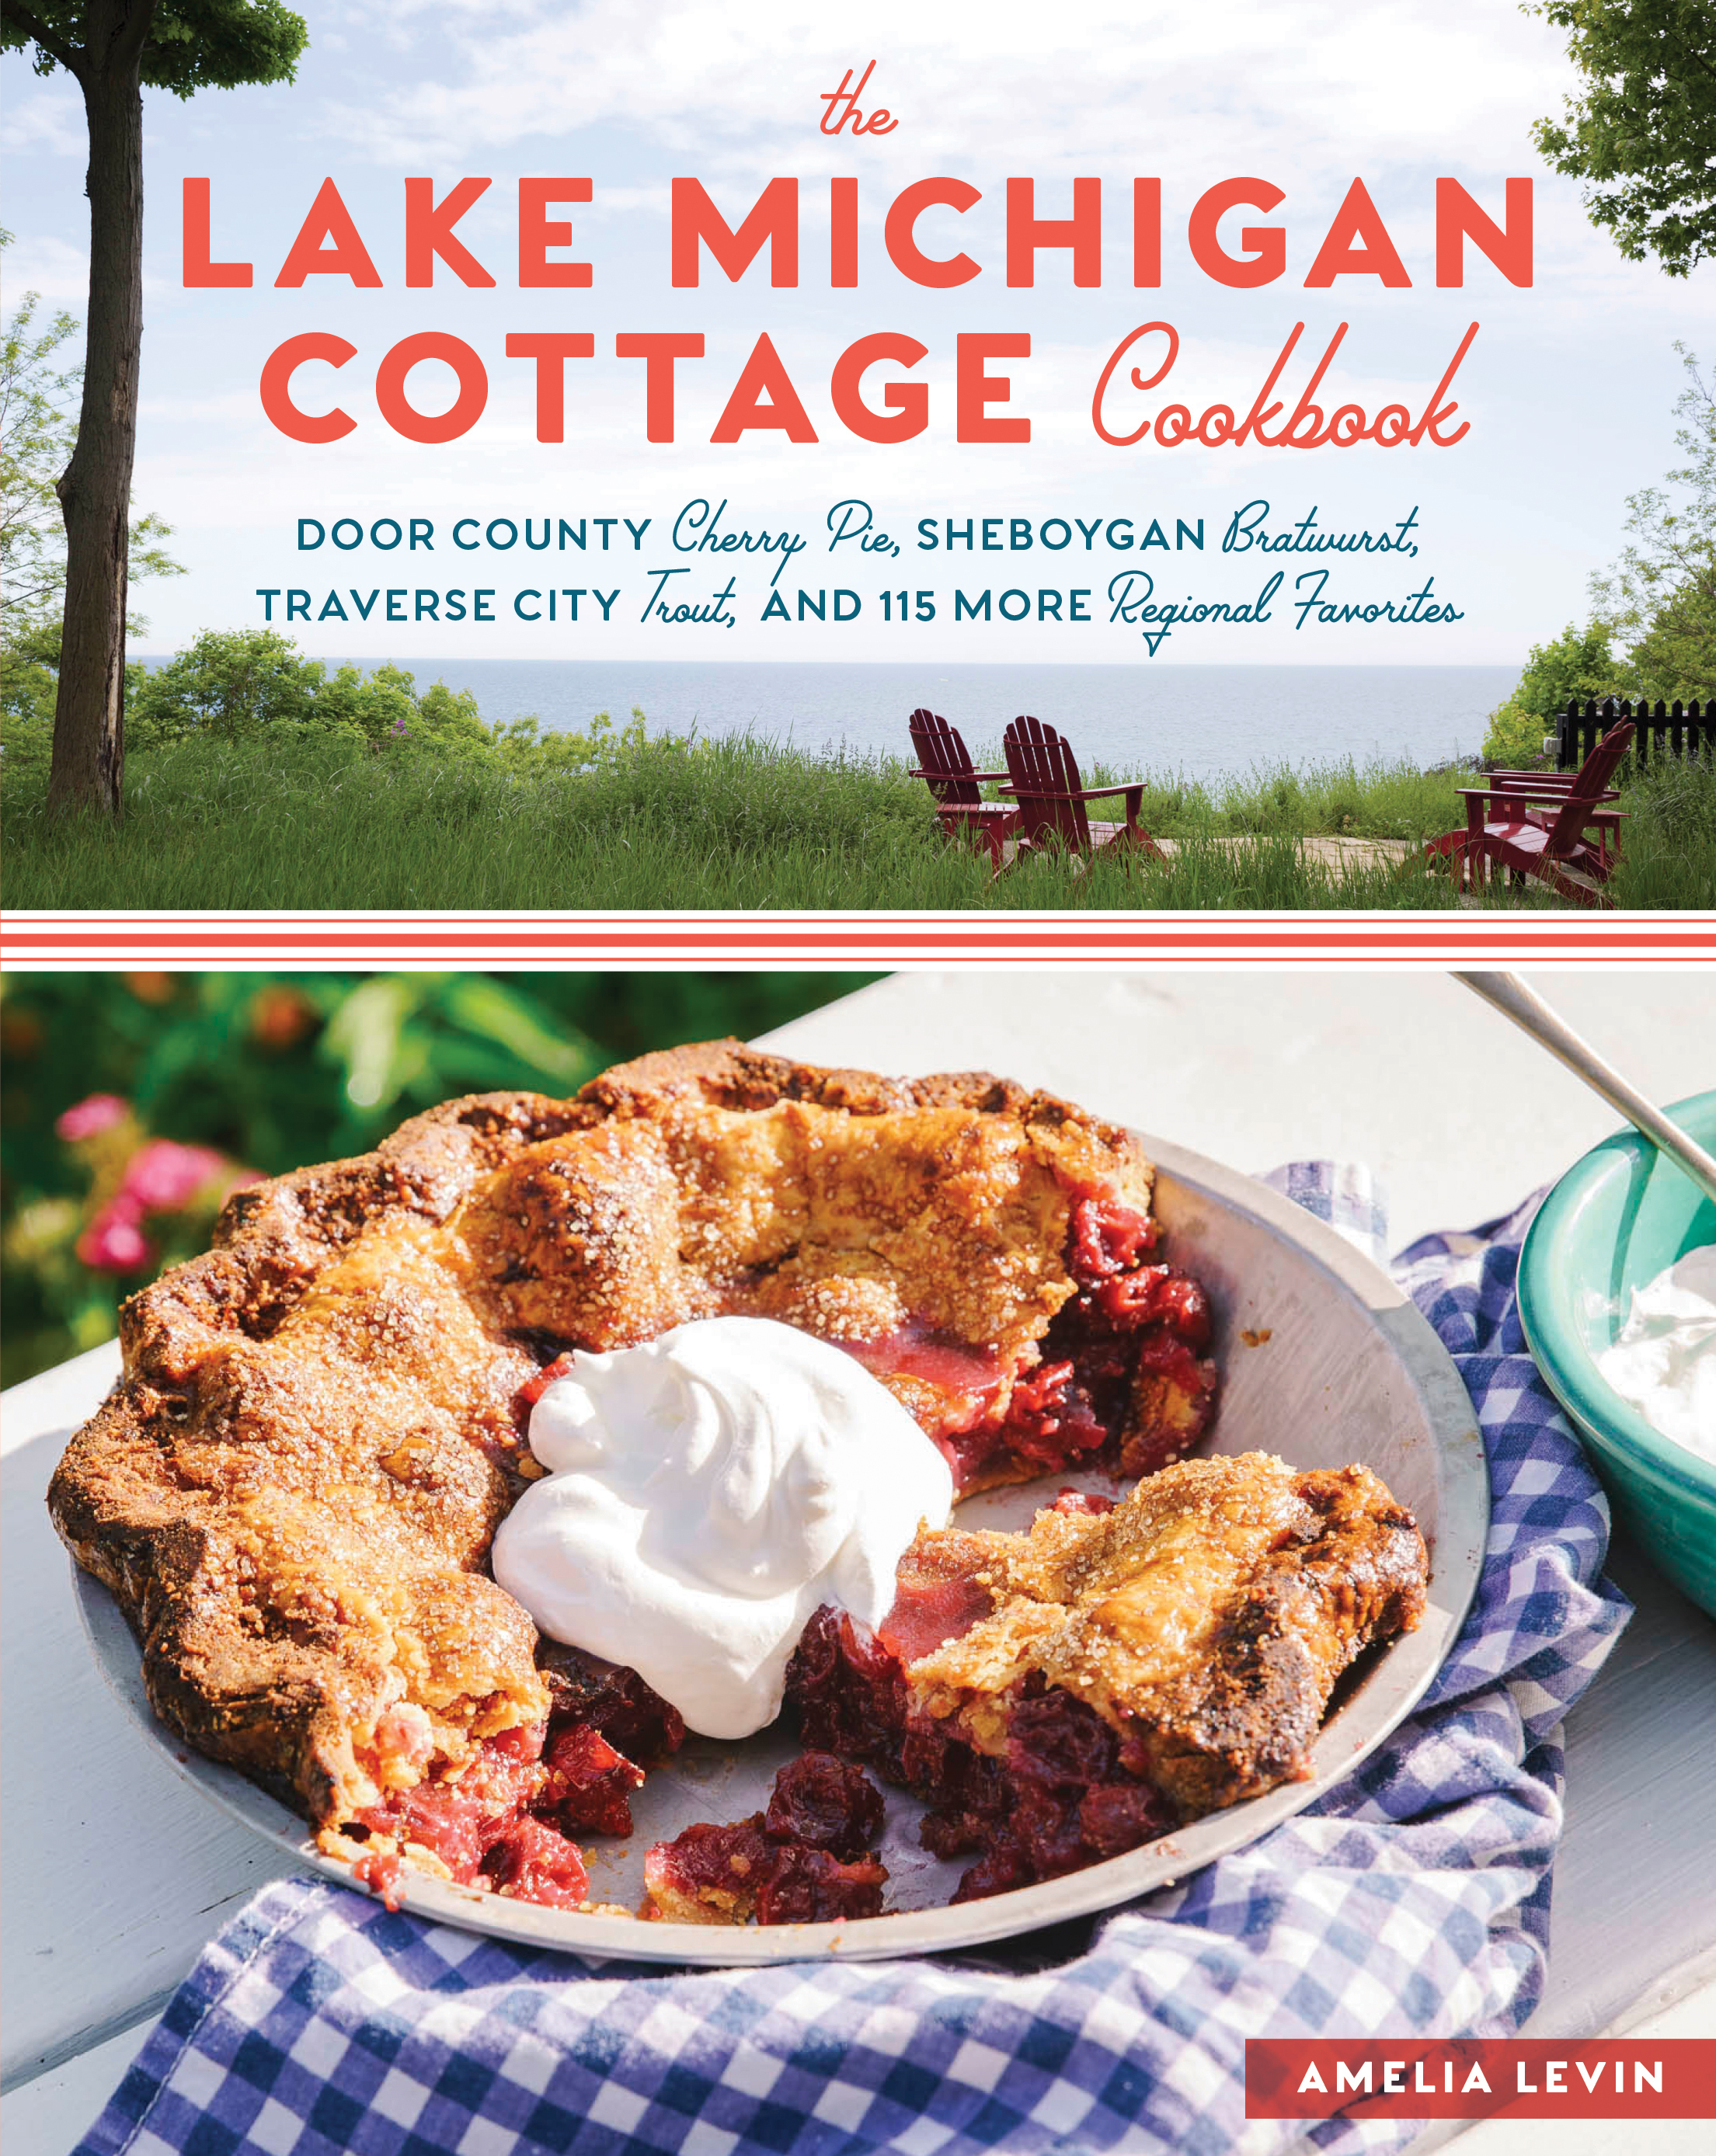 The Lake Michigan Cottage Cookbook Door County Cherry Pie, Sheboygan Bratwurst, Traverse City Trout, and 115 More Regional Favorites - Amelia Levin